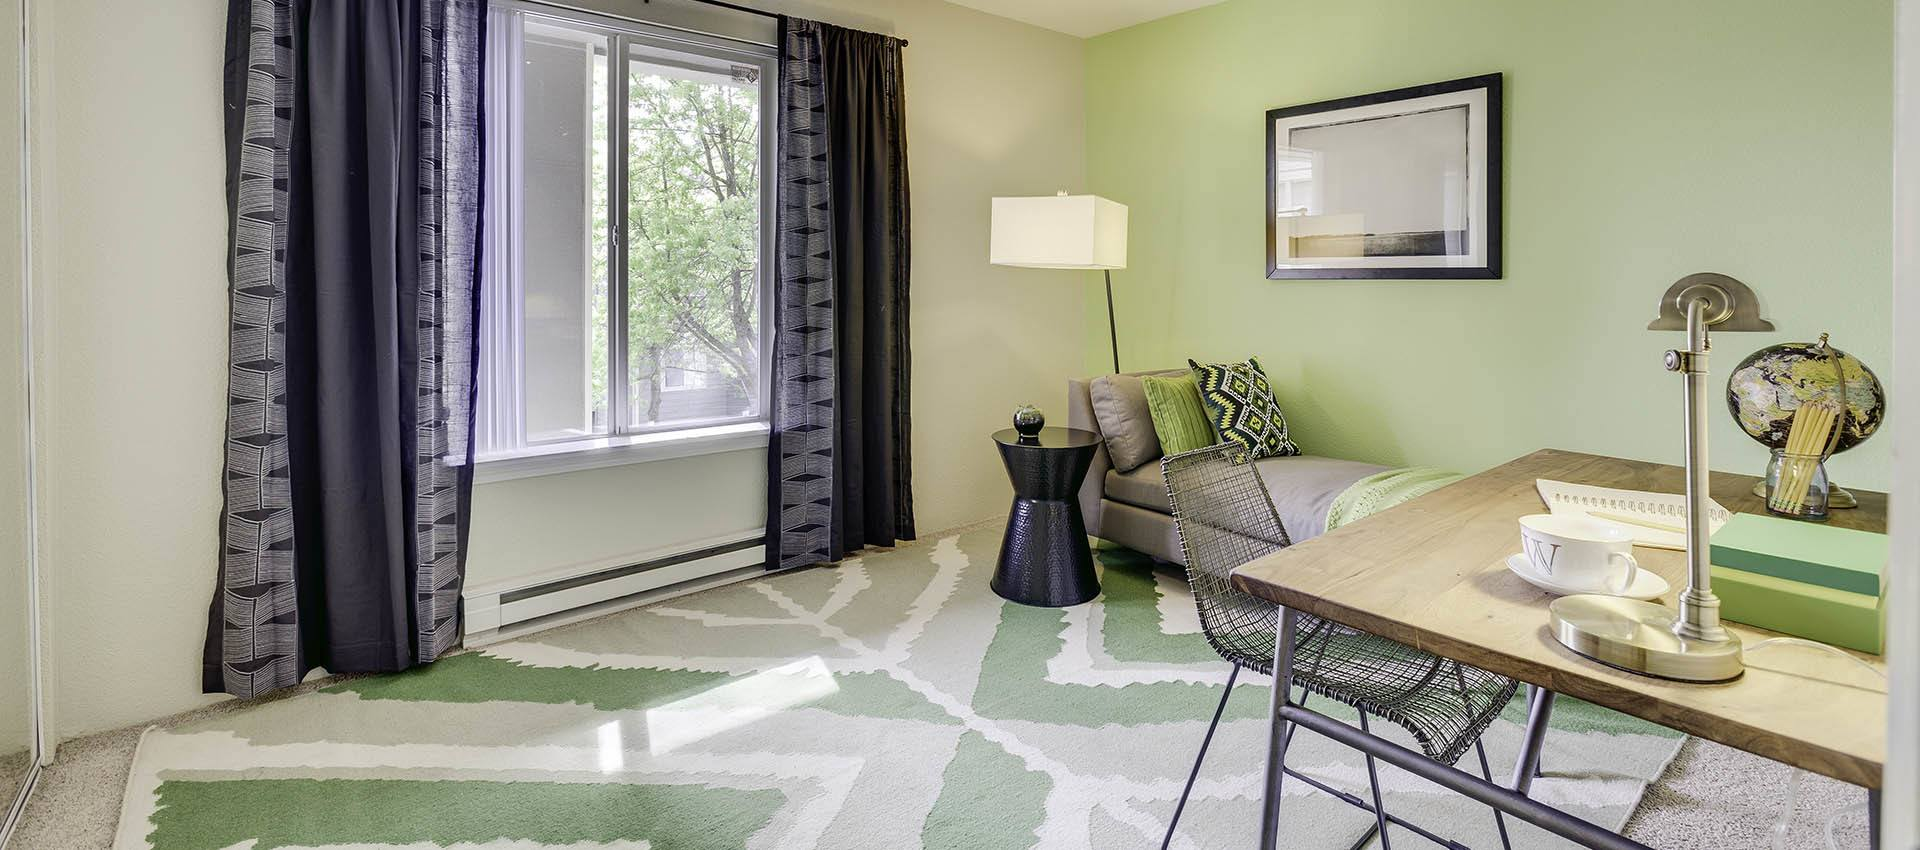 Live-work townhome at Waterhouse Place, Beaverton, OR